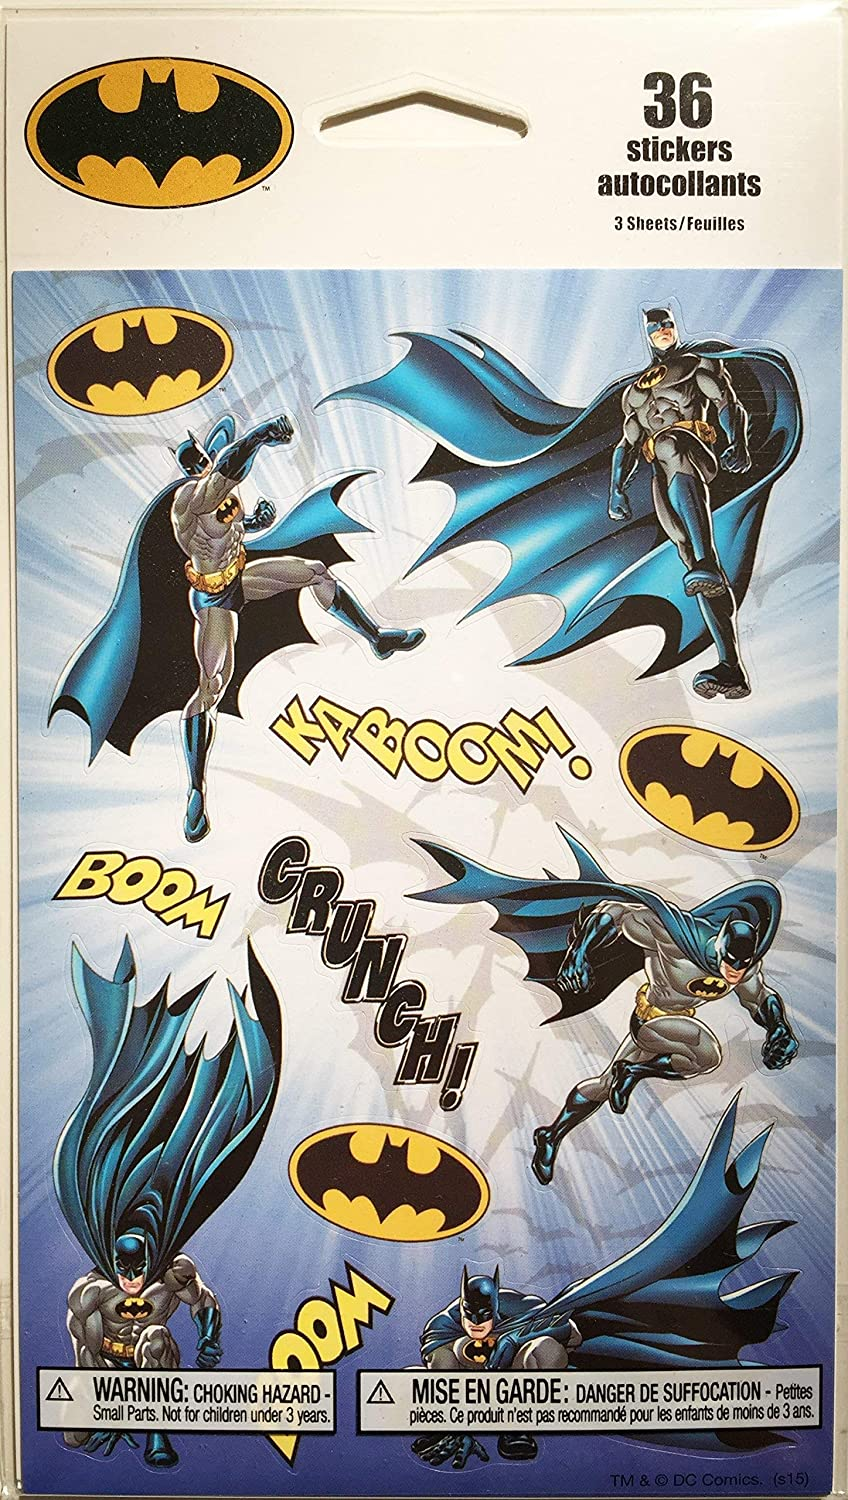 BATMAN STICKER PACK, 36 STICKERS INCLUDED